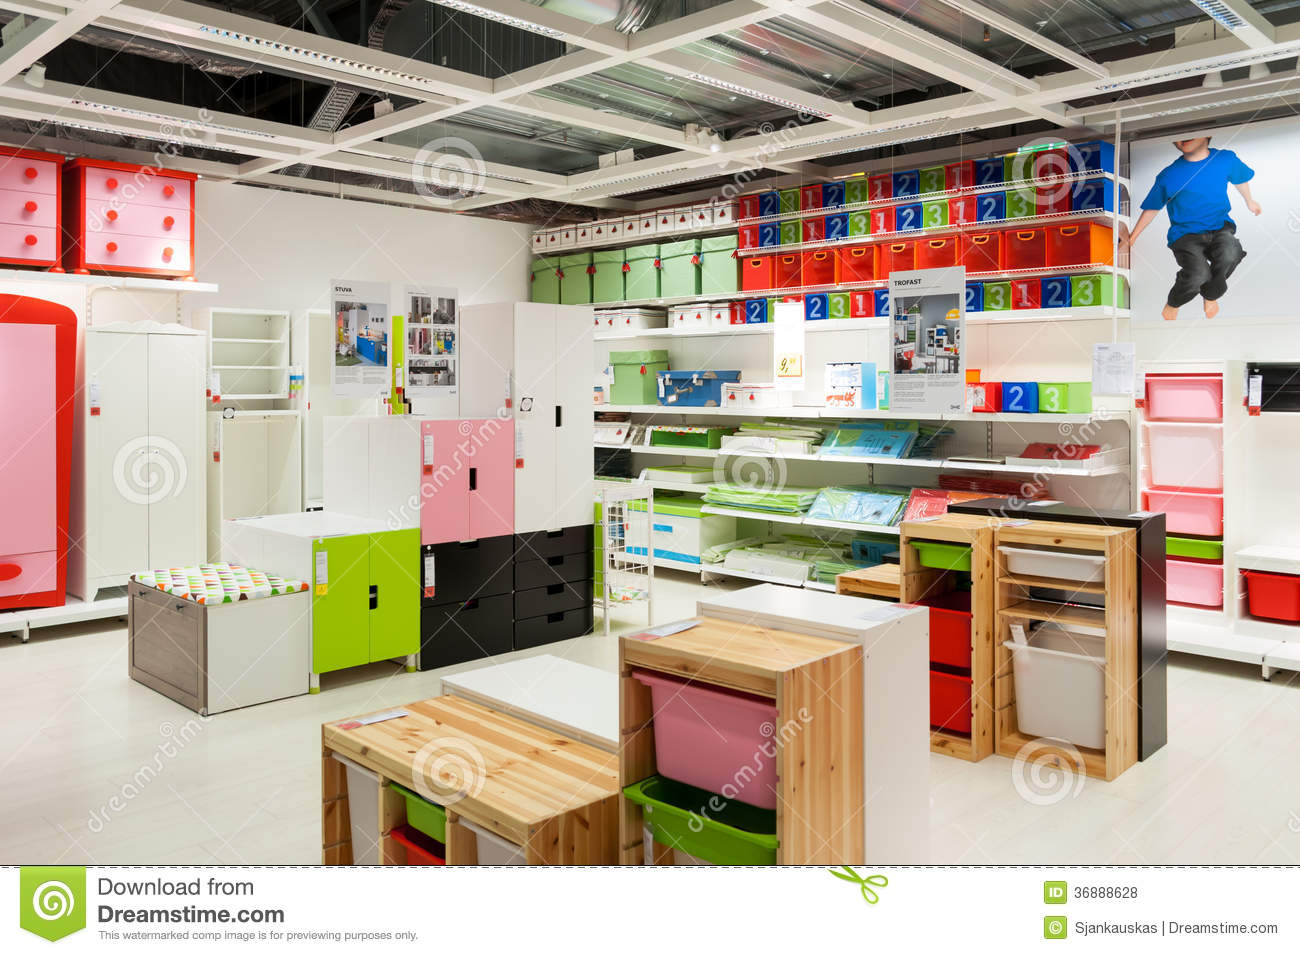 Magasin De Meuble Ikea Le Magasin De Meubles D 39ikea Badine La Zone Photo Stock